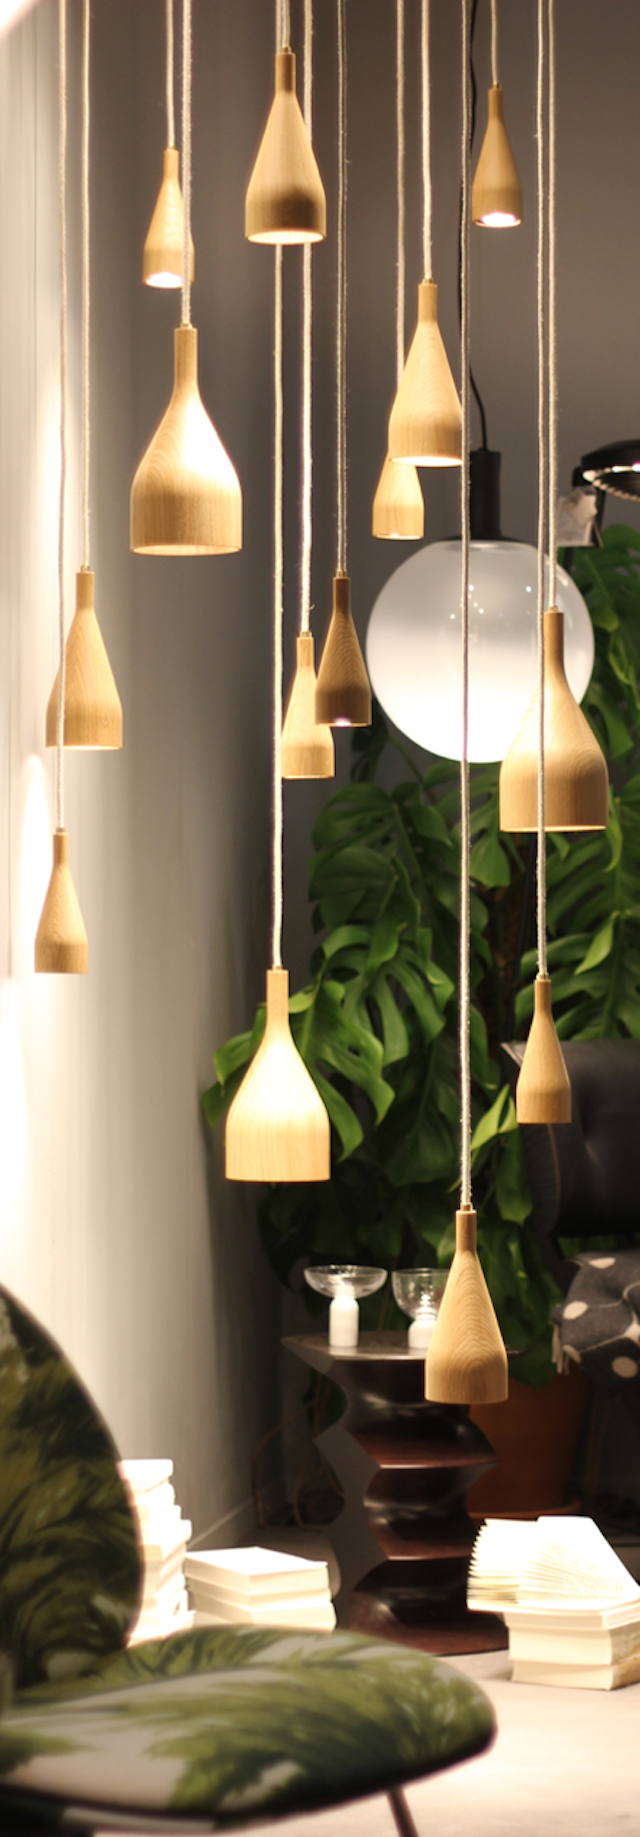 Lighting love | Eikelenboom | Timber by Hollands Licht